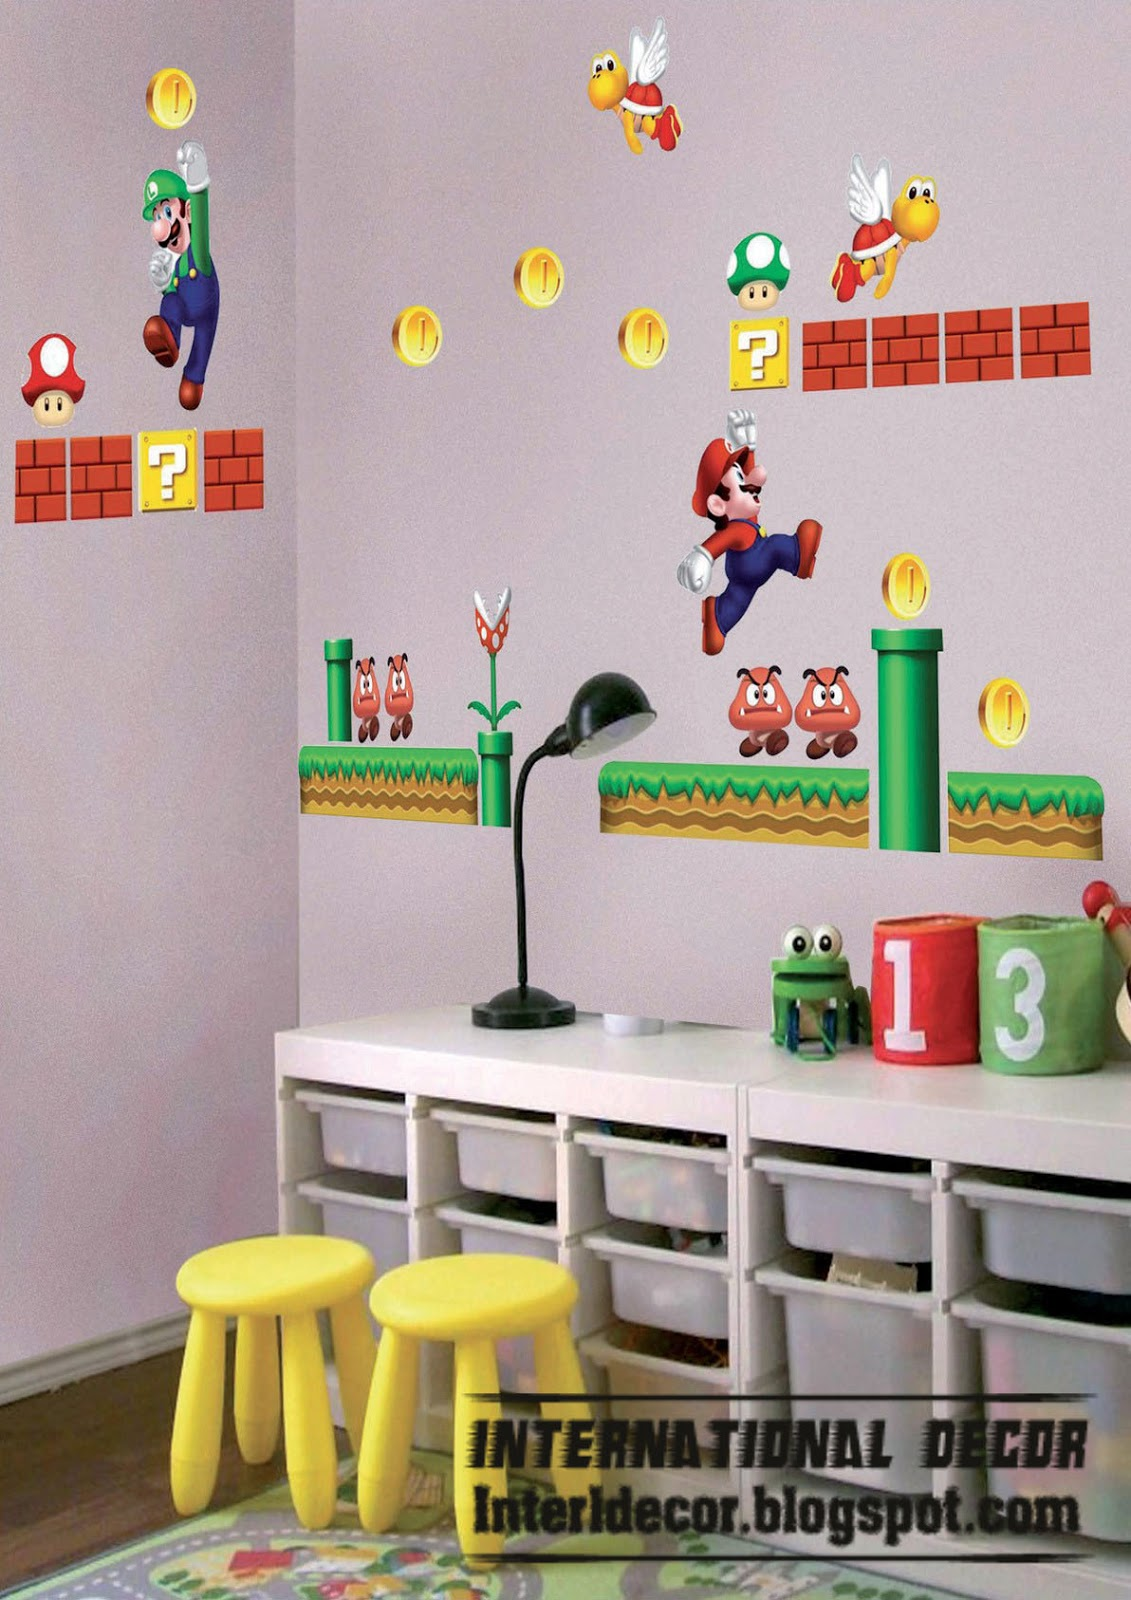 Super mario wall stickers mario kids room designs international decoration - Mario wall clings ...